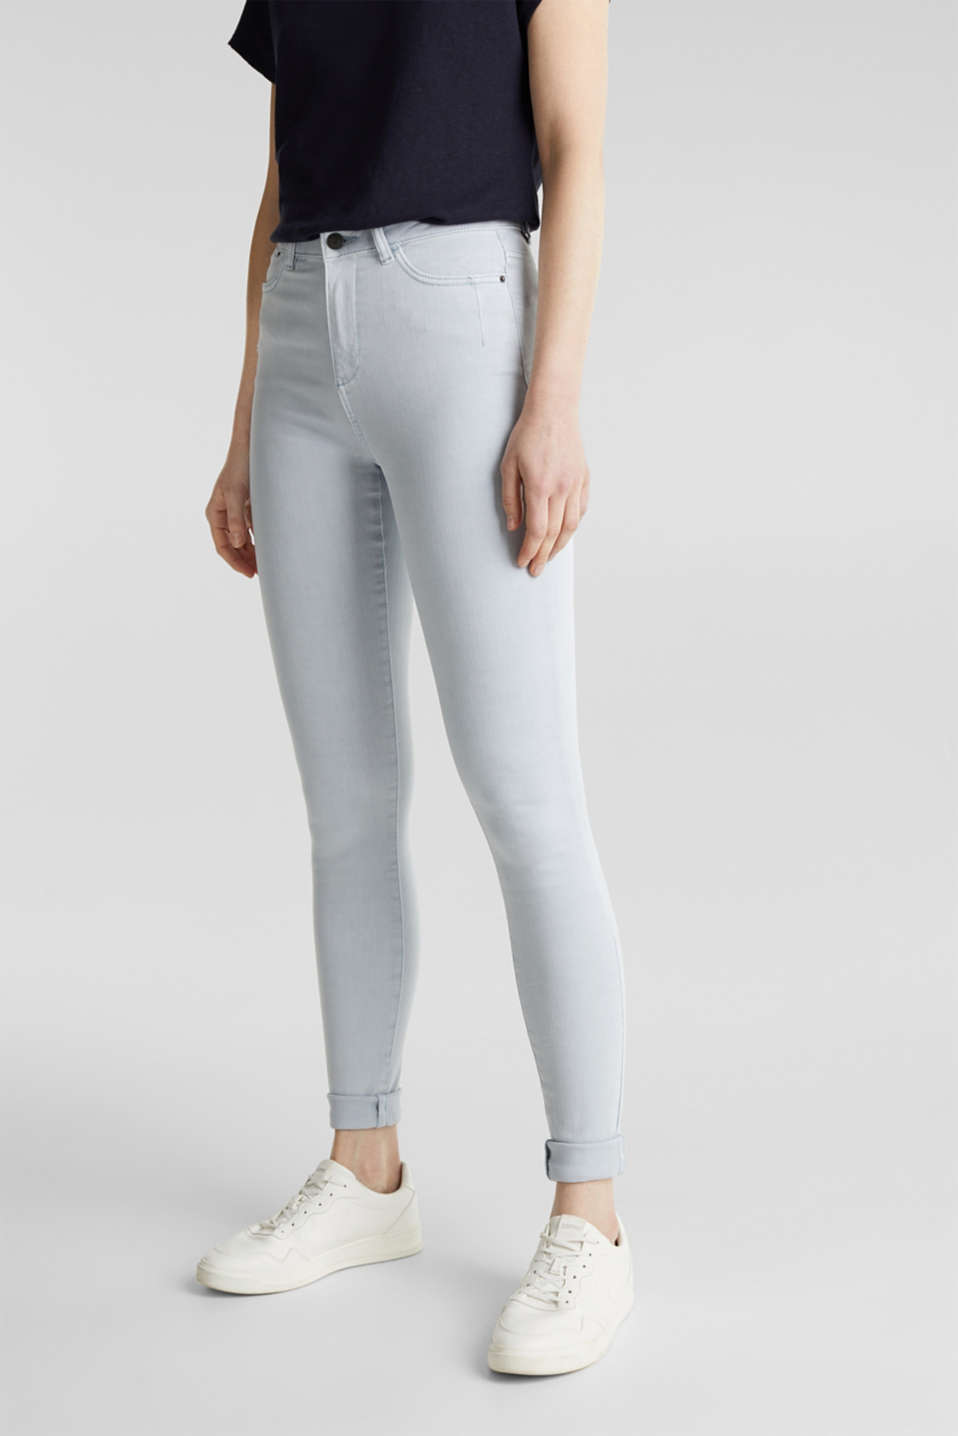 Jeans with a figure-contouring effect, LIGHT BLUE, detail image number 5